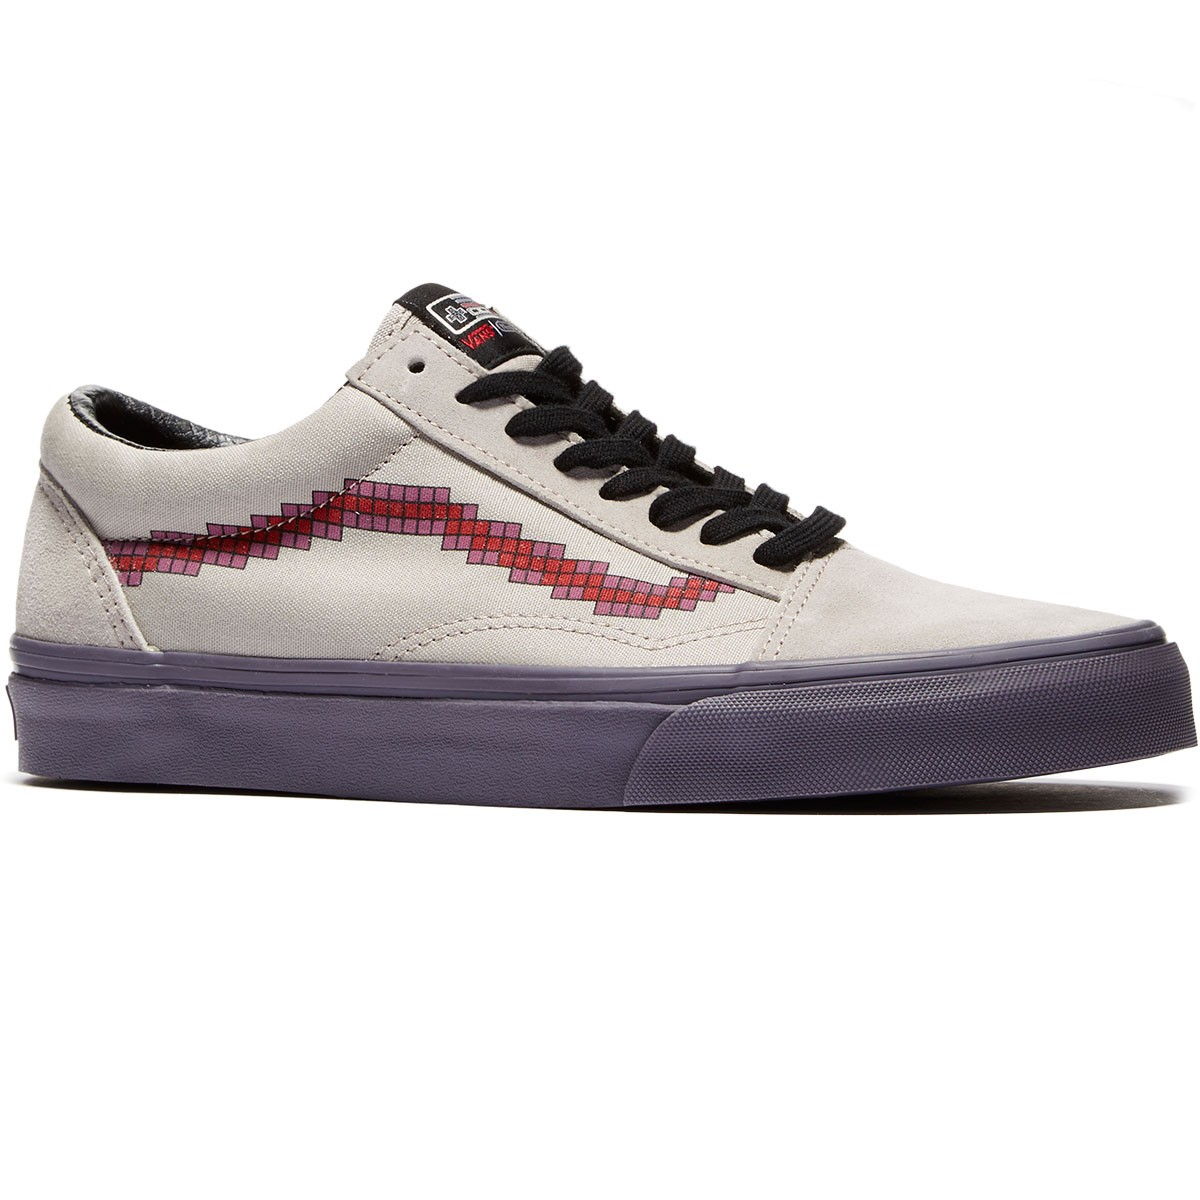 01643a0f4e vans old skool 8 bit - www.cytal.it